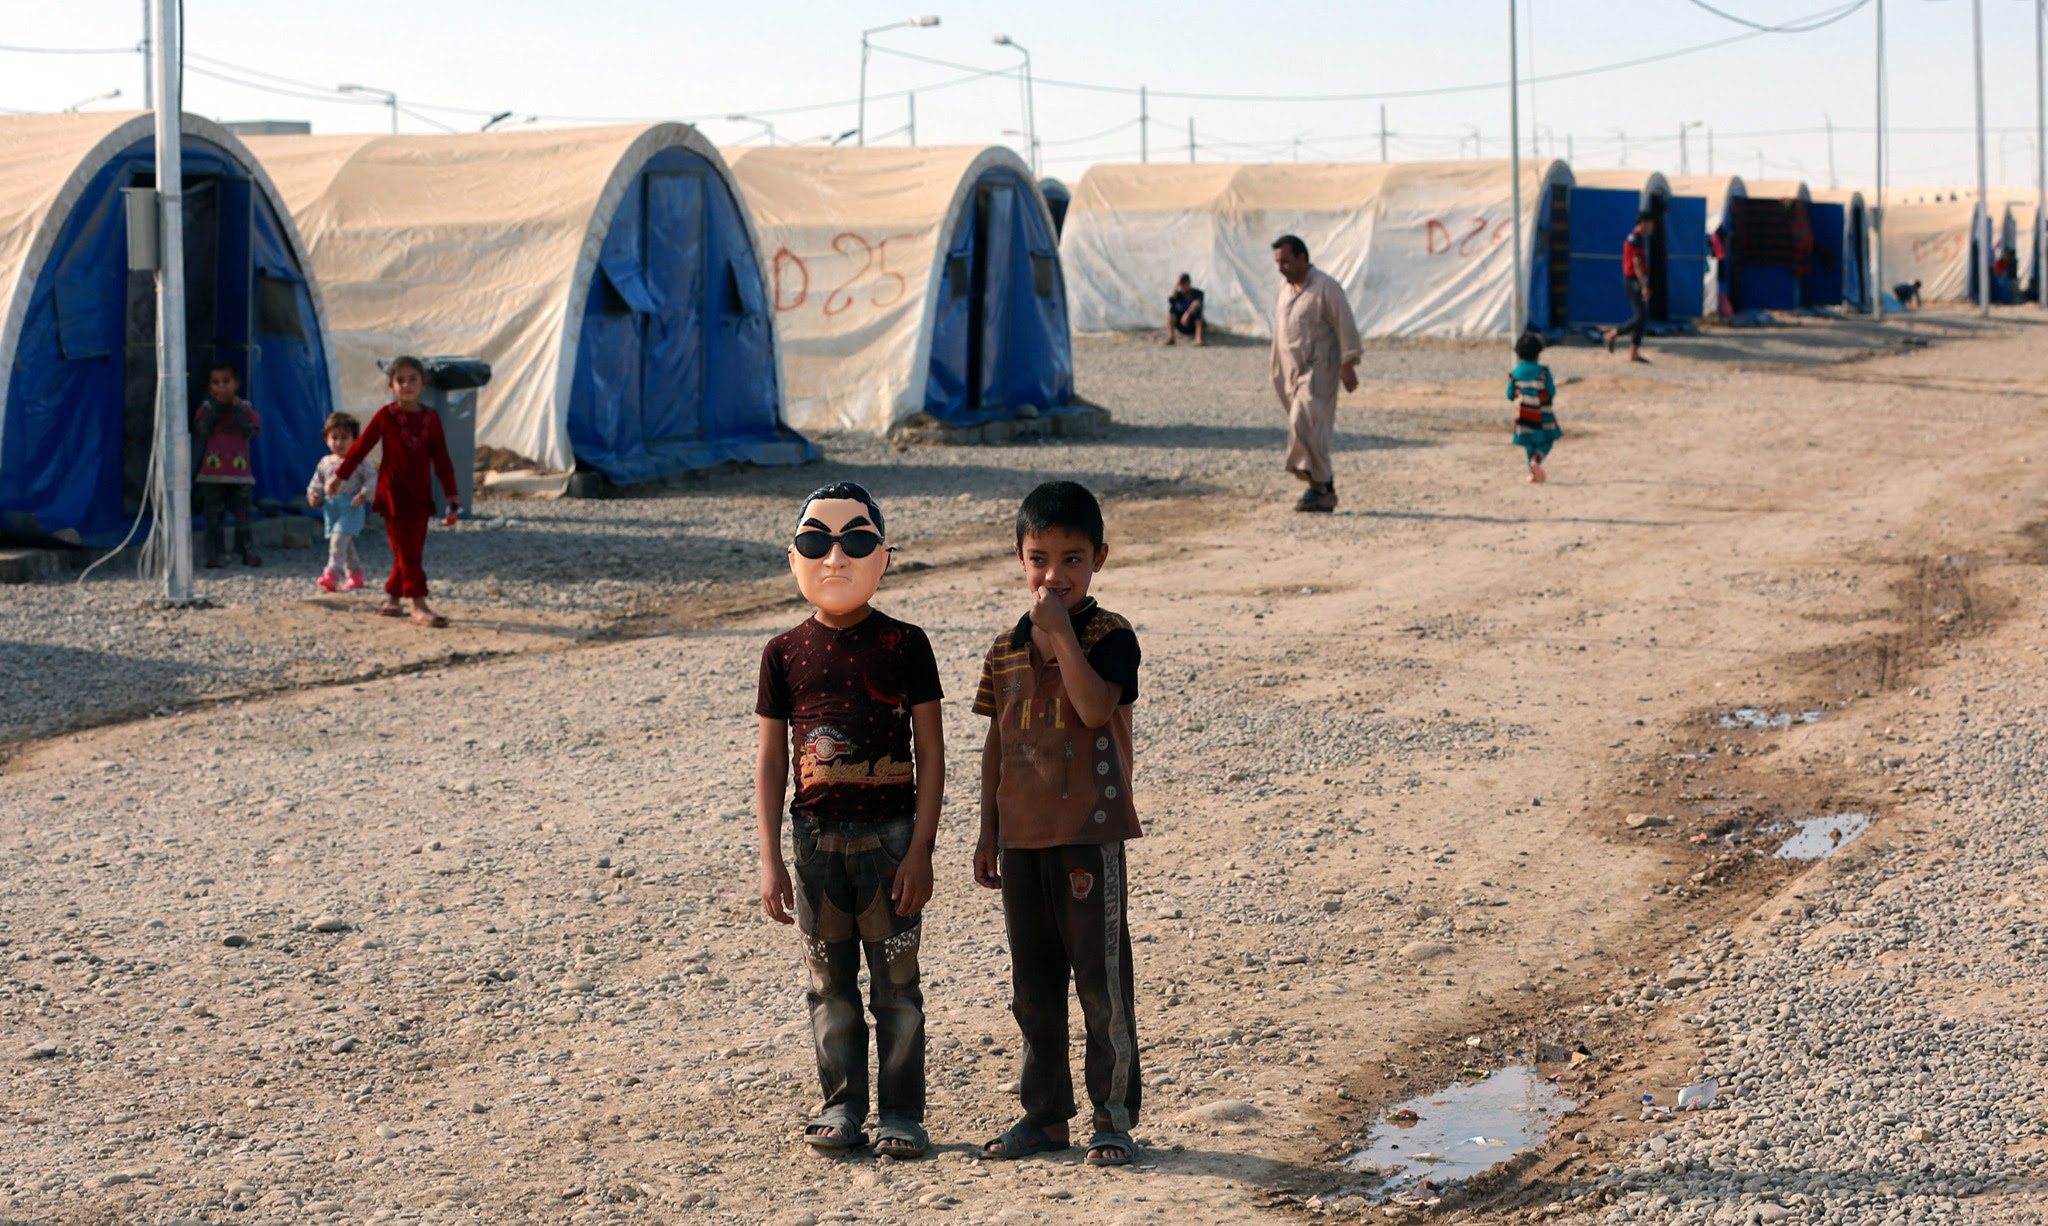 An Iraqi displaced boy (L) wears a mask depicting Korean pop star Park Jae-sang as he stands with a friend at Jadaa refugees camp near Qayyarah city, some 40 km southern Mosul, Iraq, 17 November 2016. According to a local official in Jadaa camp, the camp which was opened after the beginning of the military operation to liberation of Mosul city, is currently hosting around ten thousand people who fled from many villages near Mosul due to the fighting between the Iraqi forces and Islamic State (IS) group.  EPA/AHMED JALIL